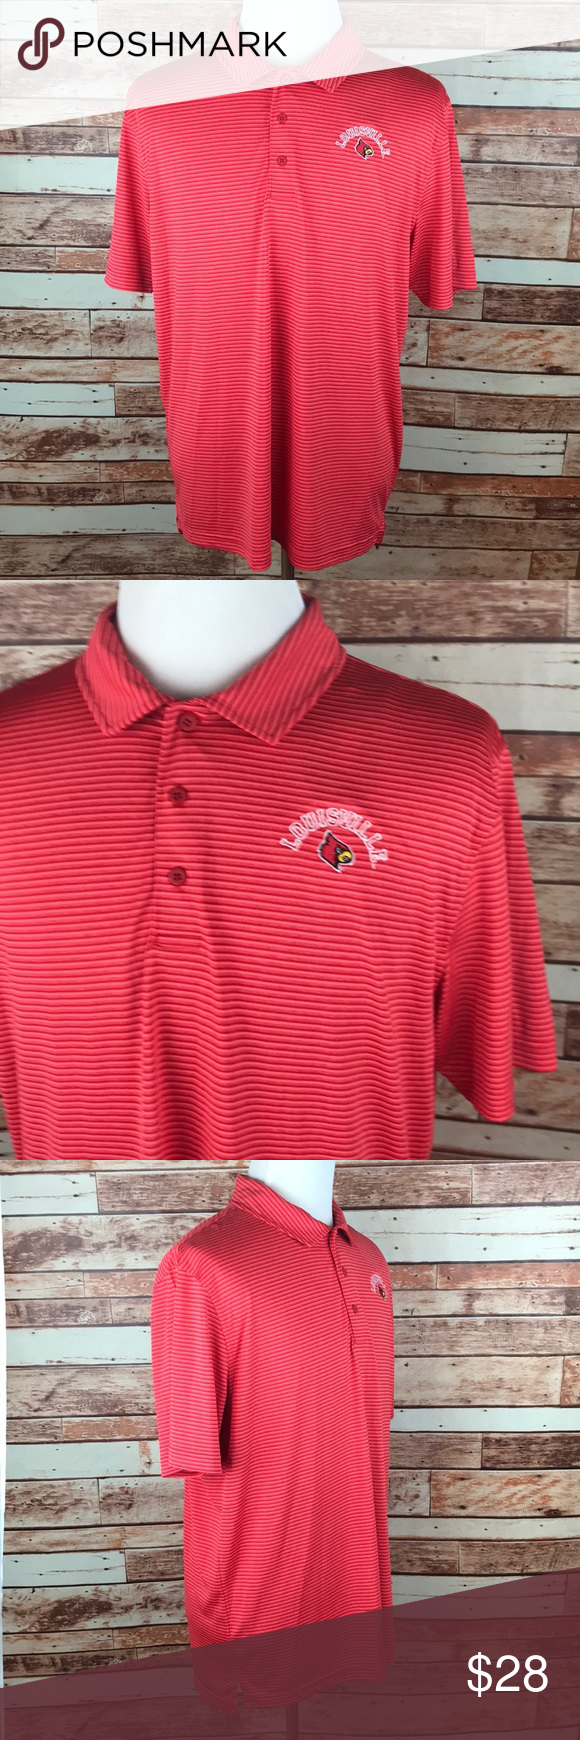 Louisville Cardinals Red Stripe Golf Polo Shirt Nwt In 2018 My